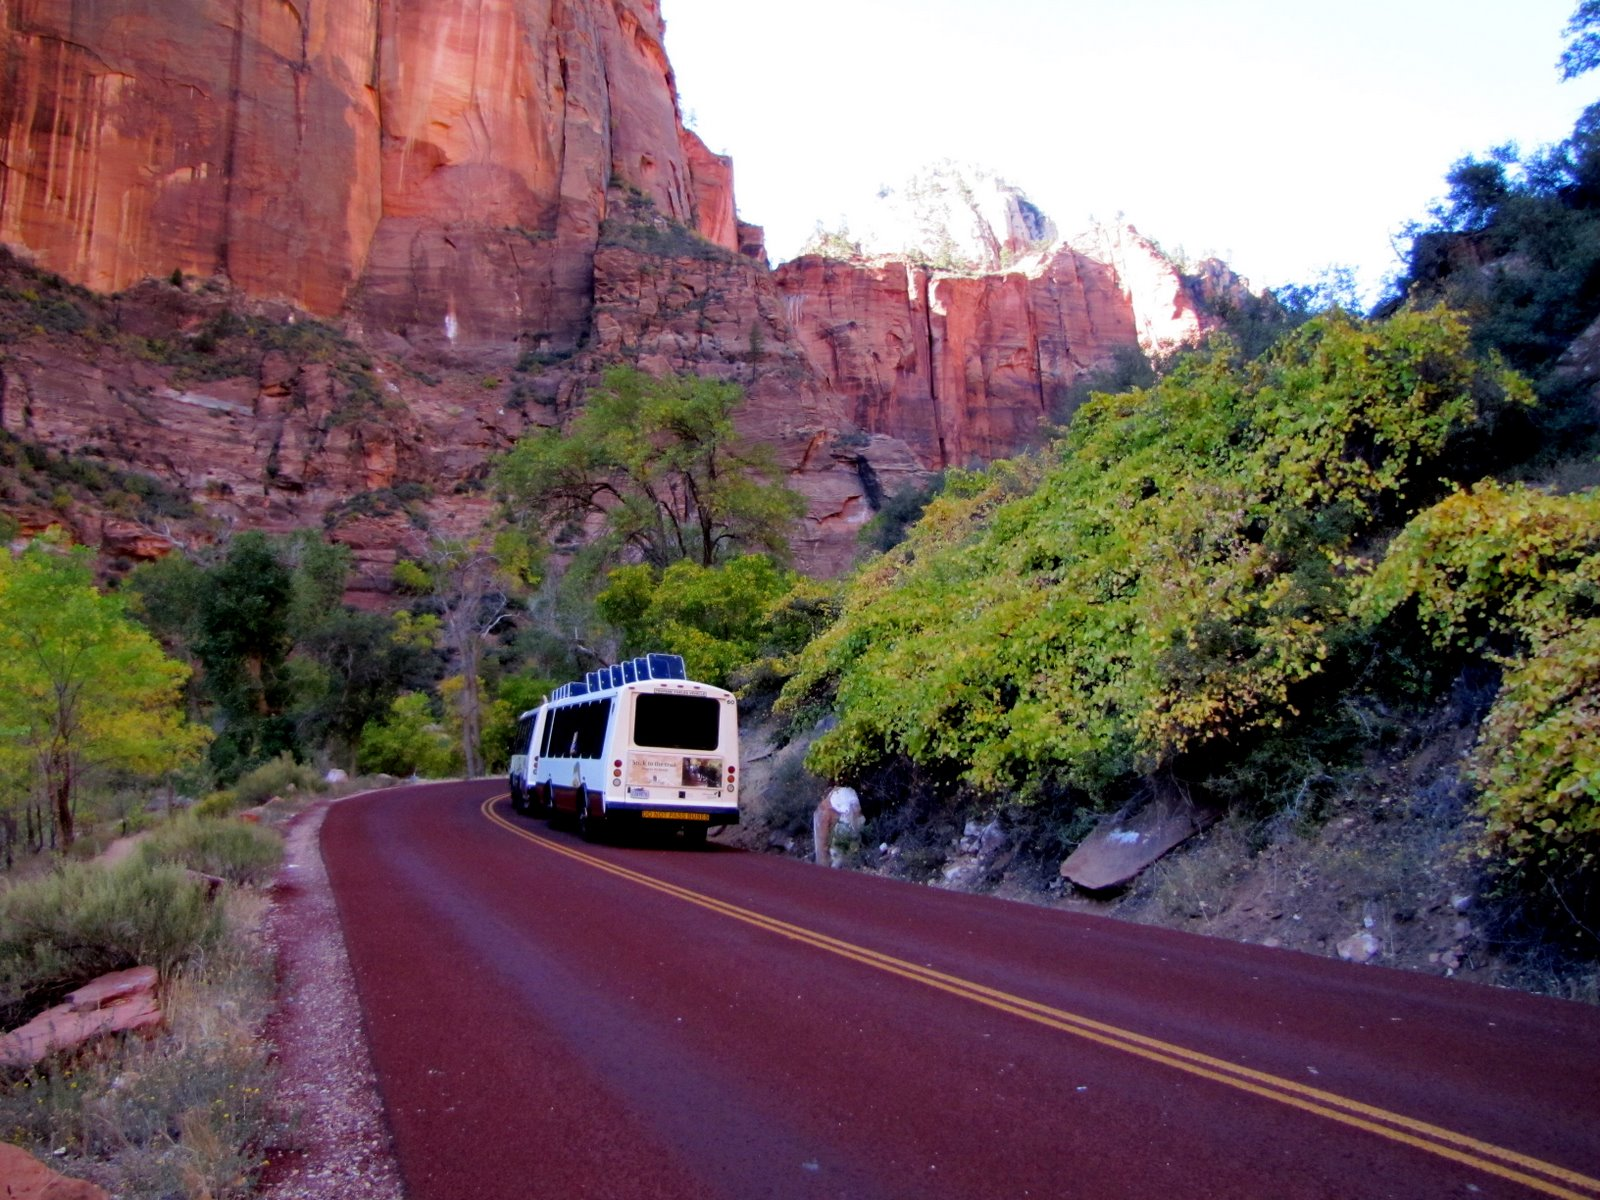 A Zion park buszai  The busses of the Zion Park